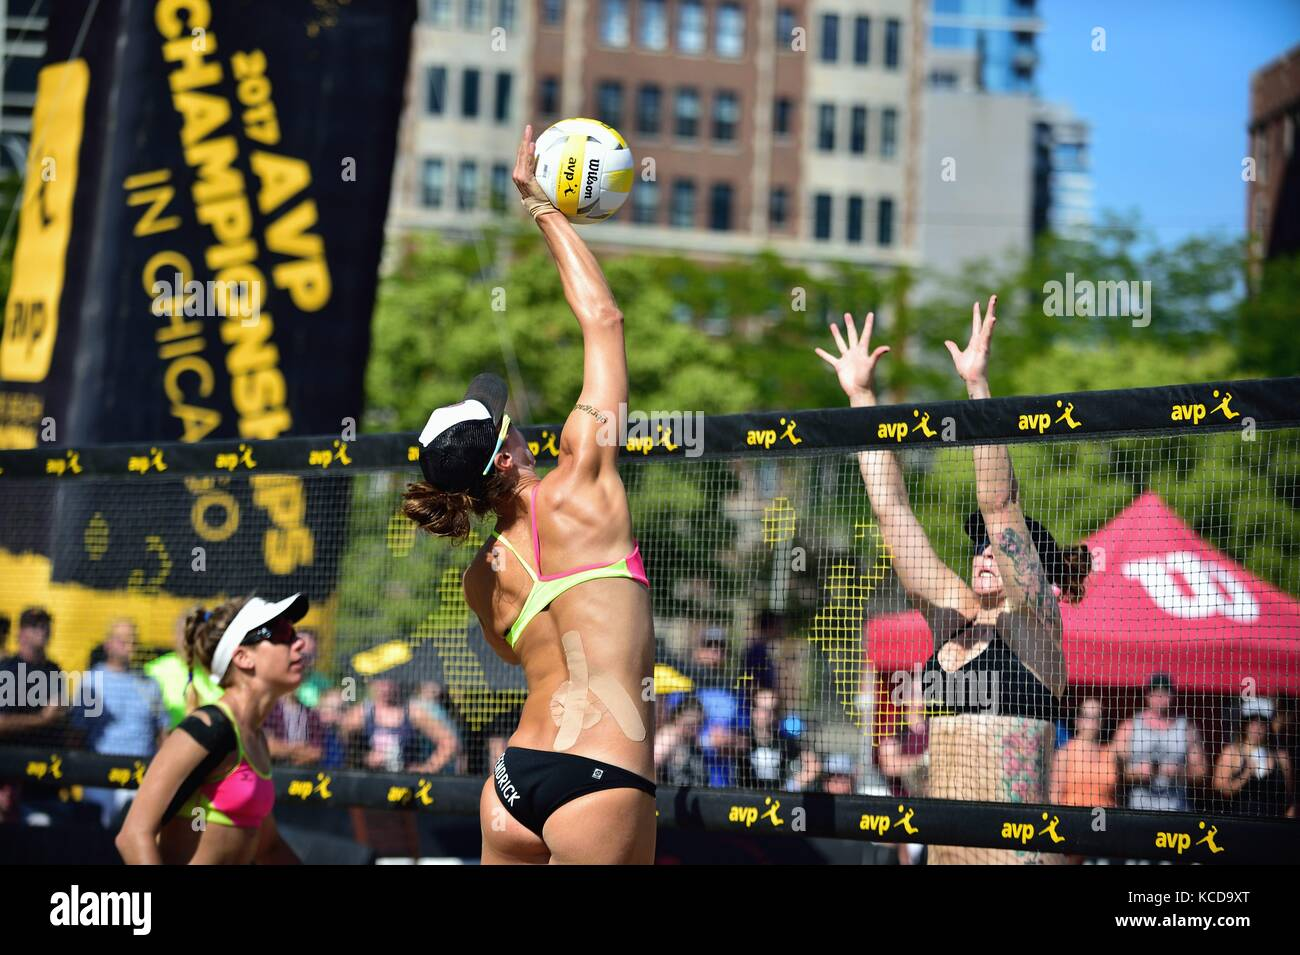 Player delivering a kill shot at the net during quarter final action at the AVP 2017 Women's Chicago Championships. - Stock Image